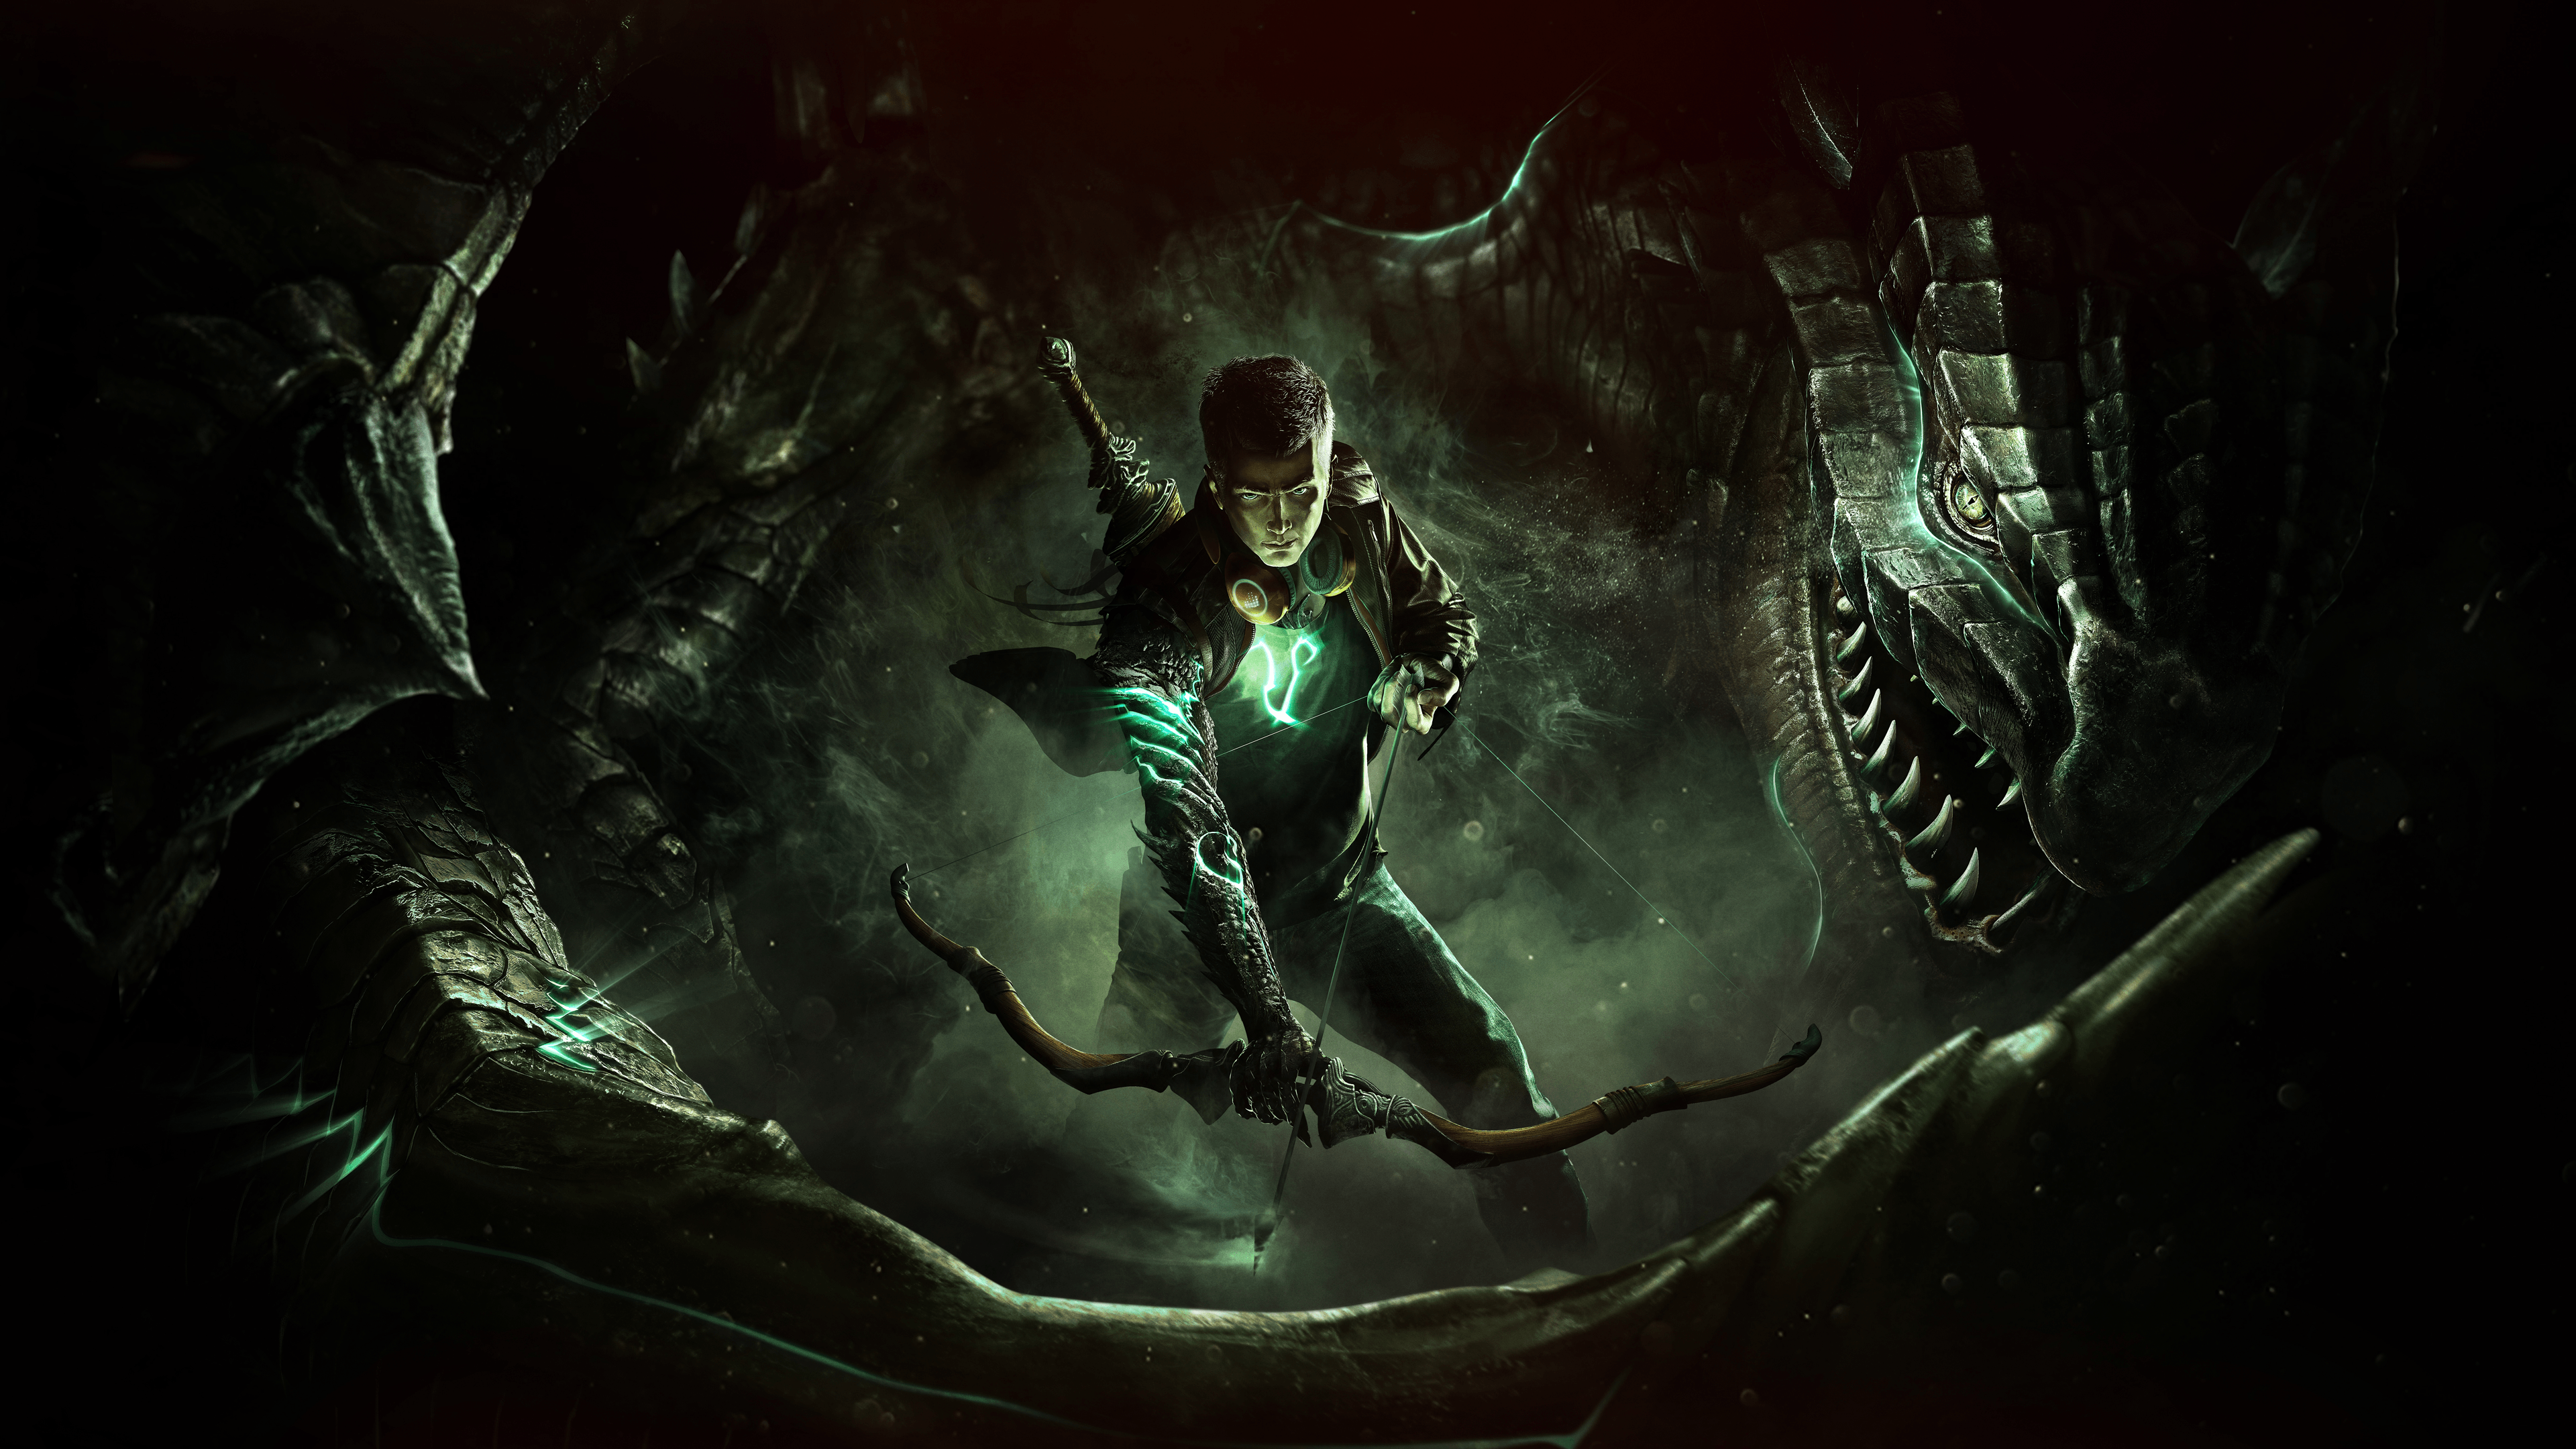 2K Gaming Wallpapers   Top 2K Gaming Backgrounds 3840x2160